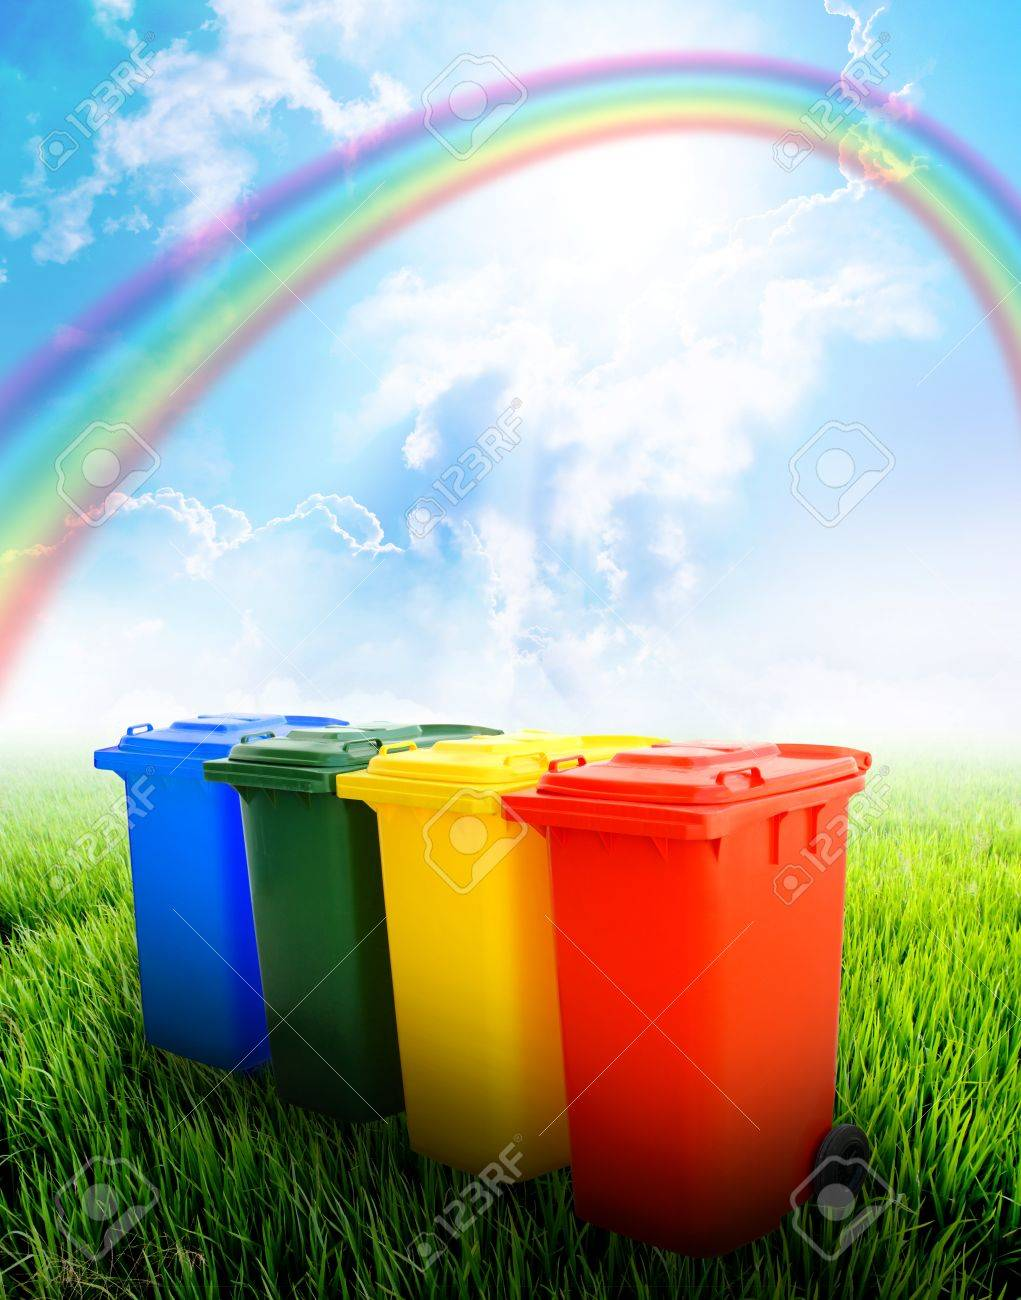 Colorful recycle bins  with landscape background Stock Photo - 12806450